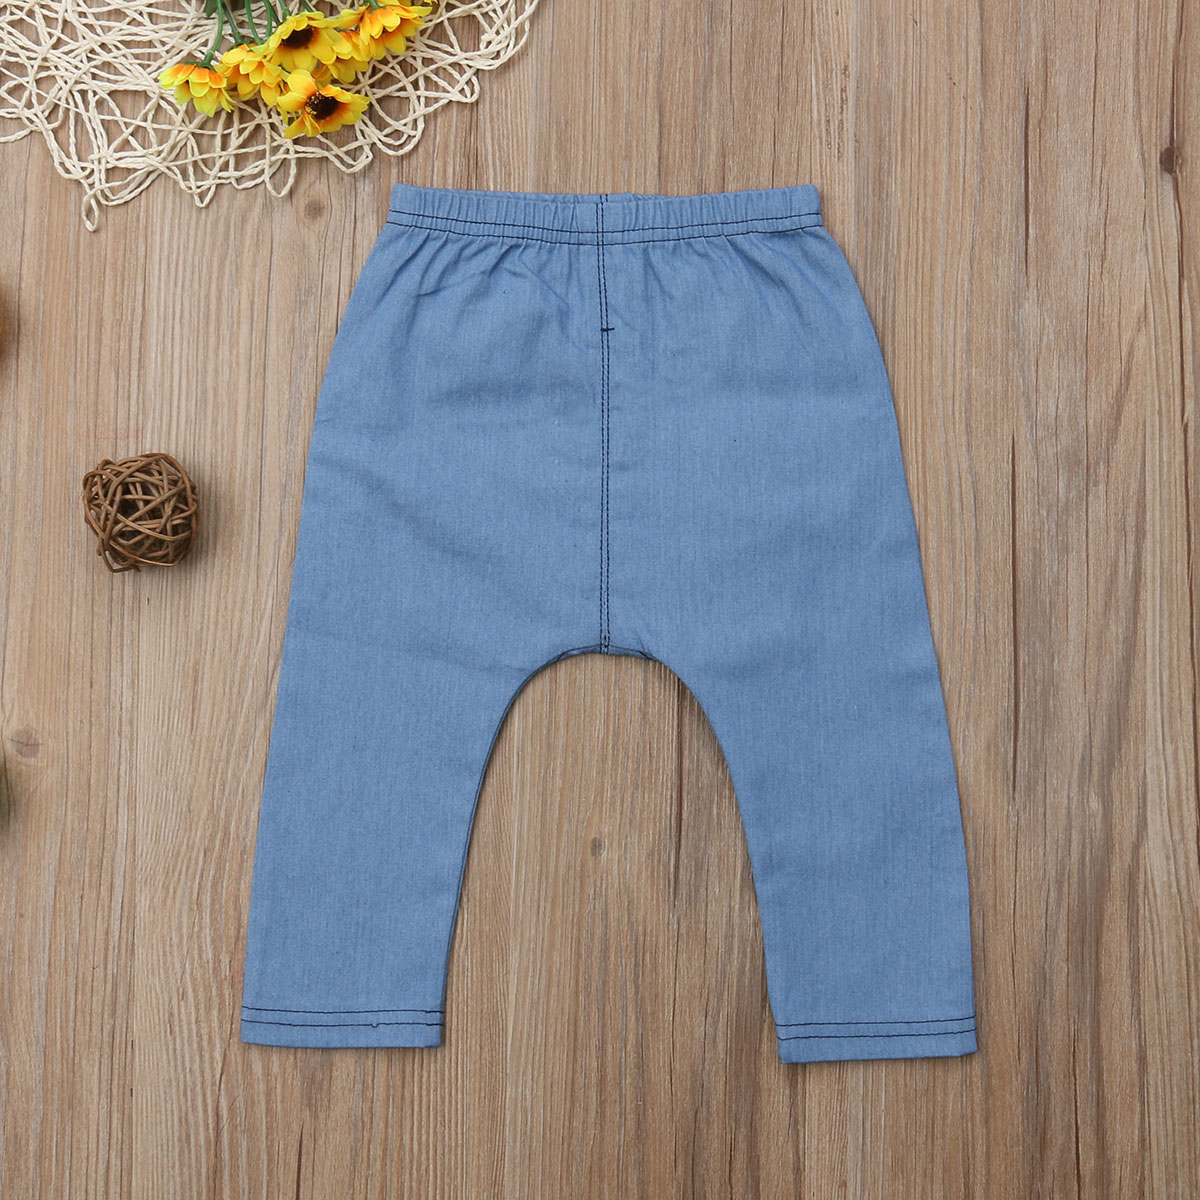 Infant Baby Boys&Girls Clothes Cartoon Bears Denim Clothing Long Pants Bottoms Kids Trousers 0-3 Years 2